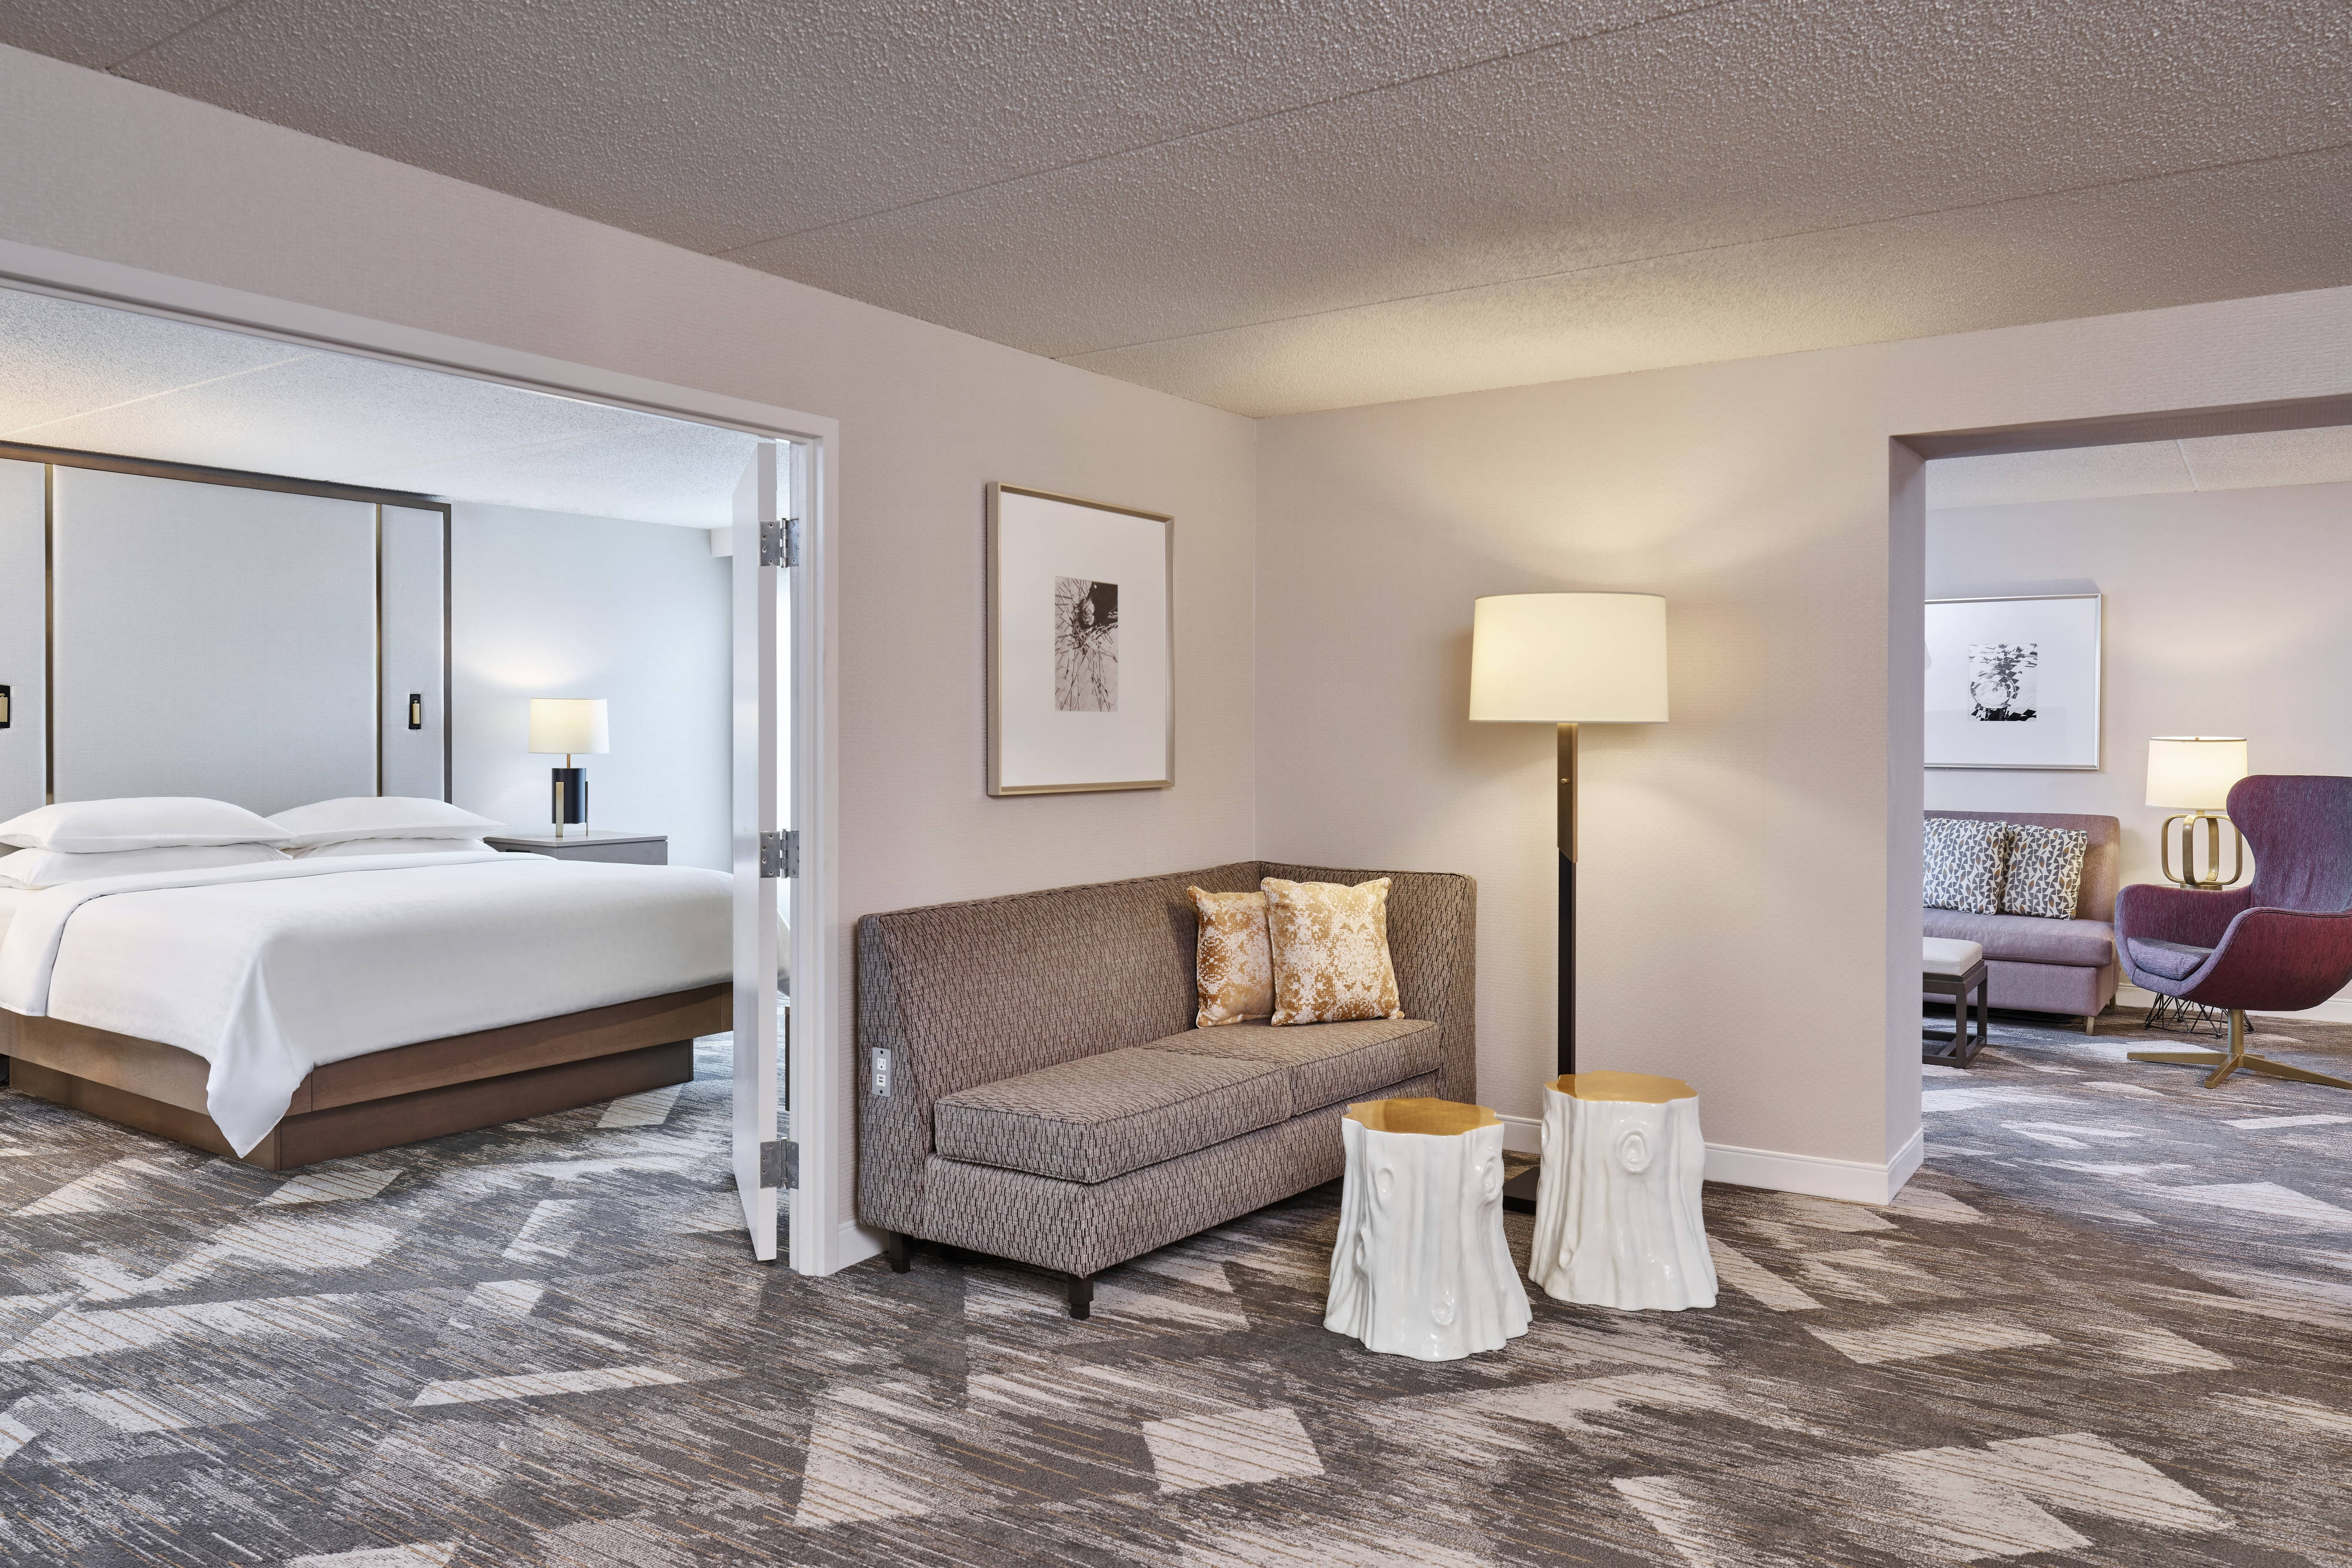 Hospitality Suite - Bedroom